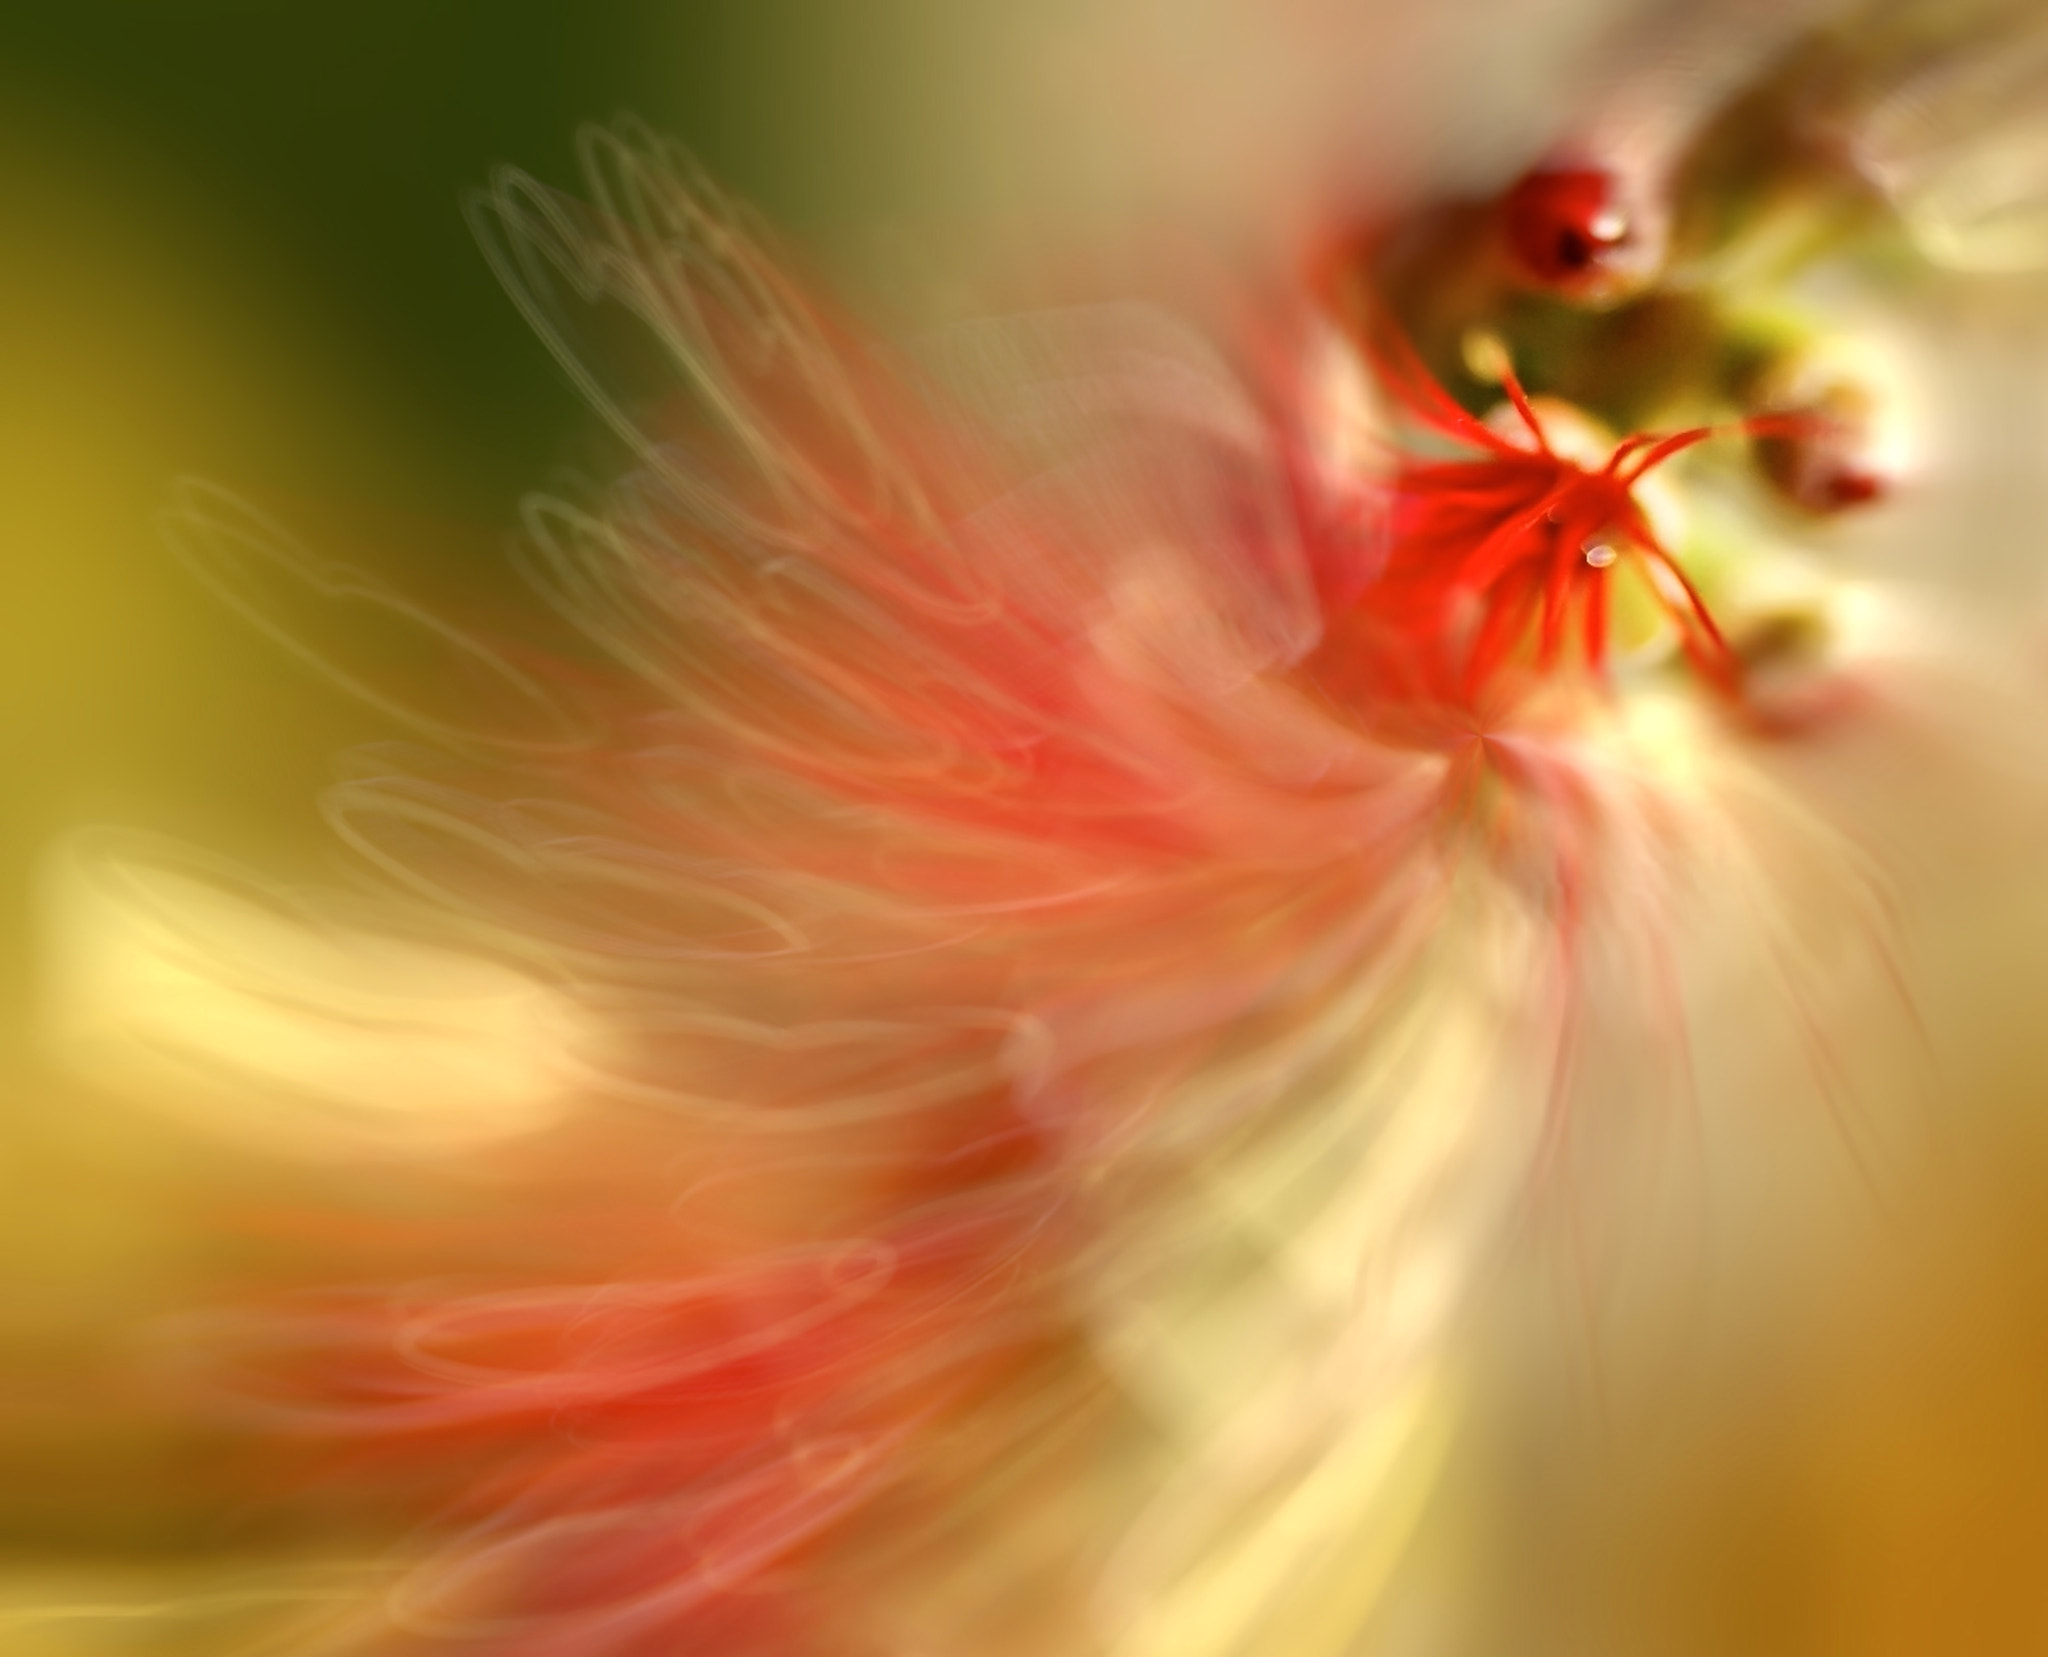 Photograph Abstract Flower by Josep Sumalla on 500px